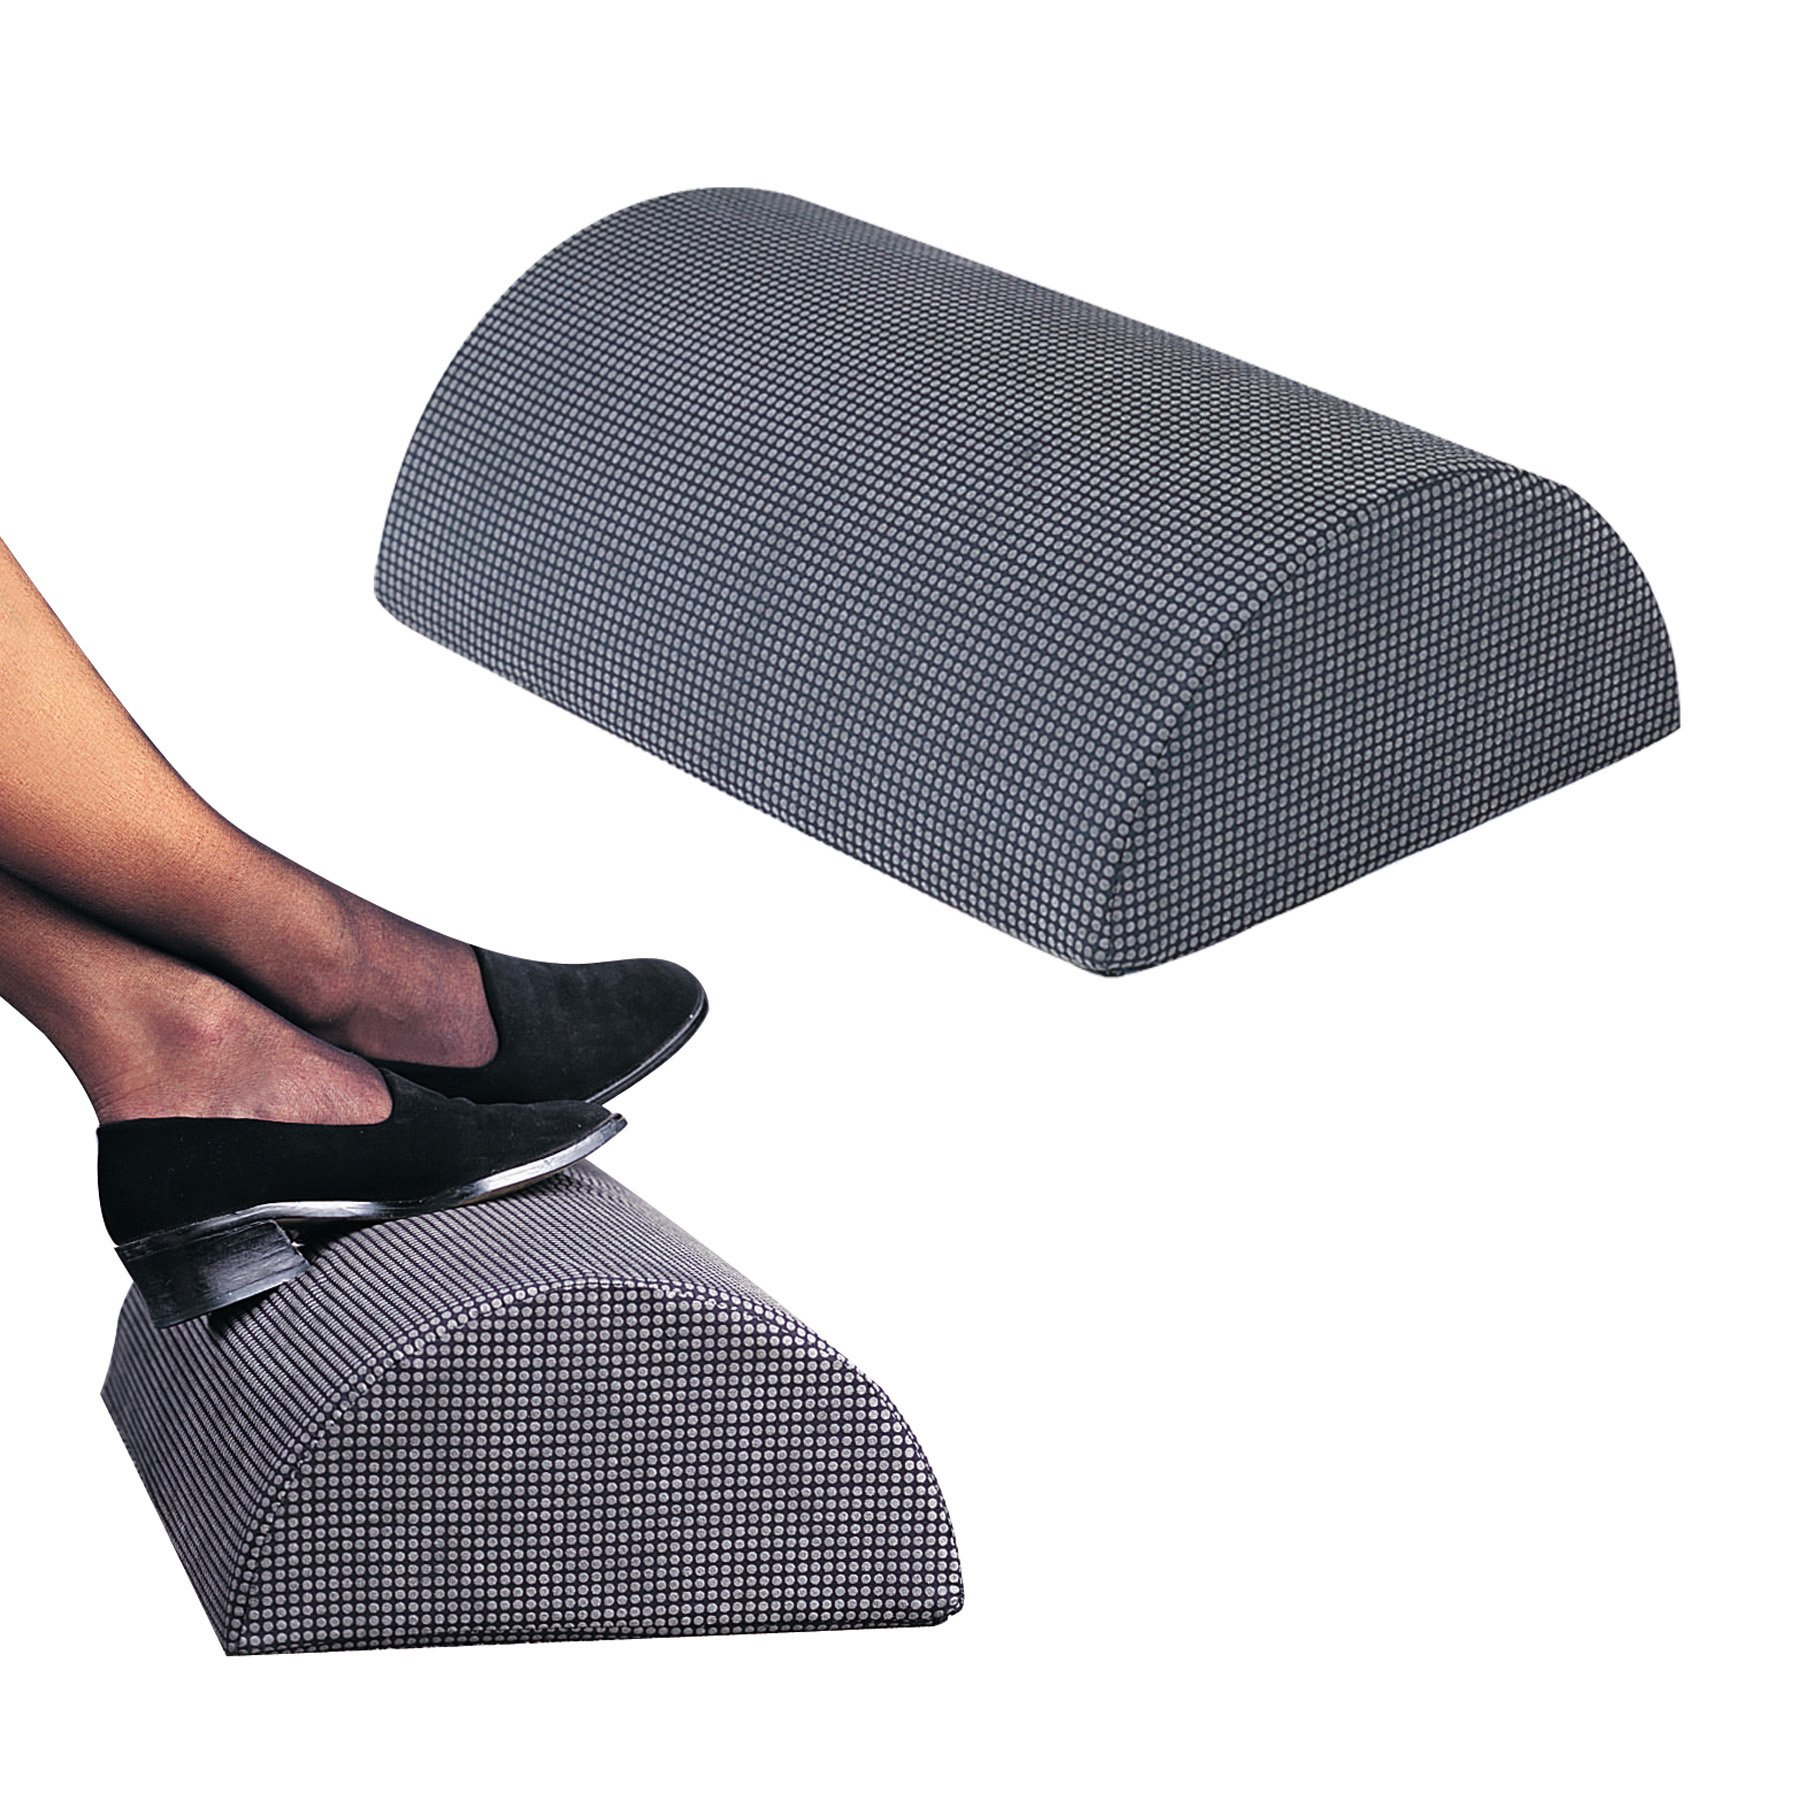 Safco Remedease Foot Cushions (Set of 5) by Safco